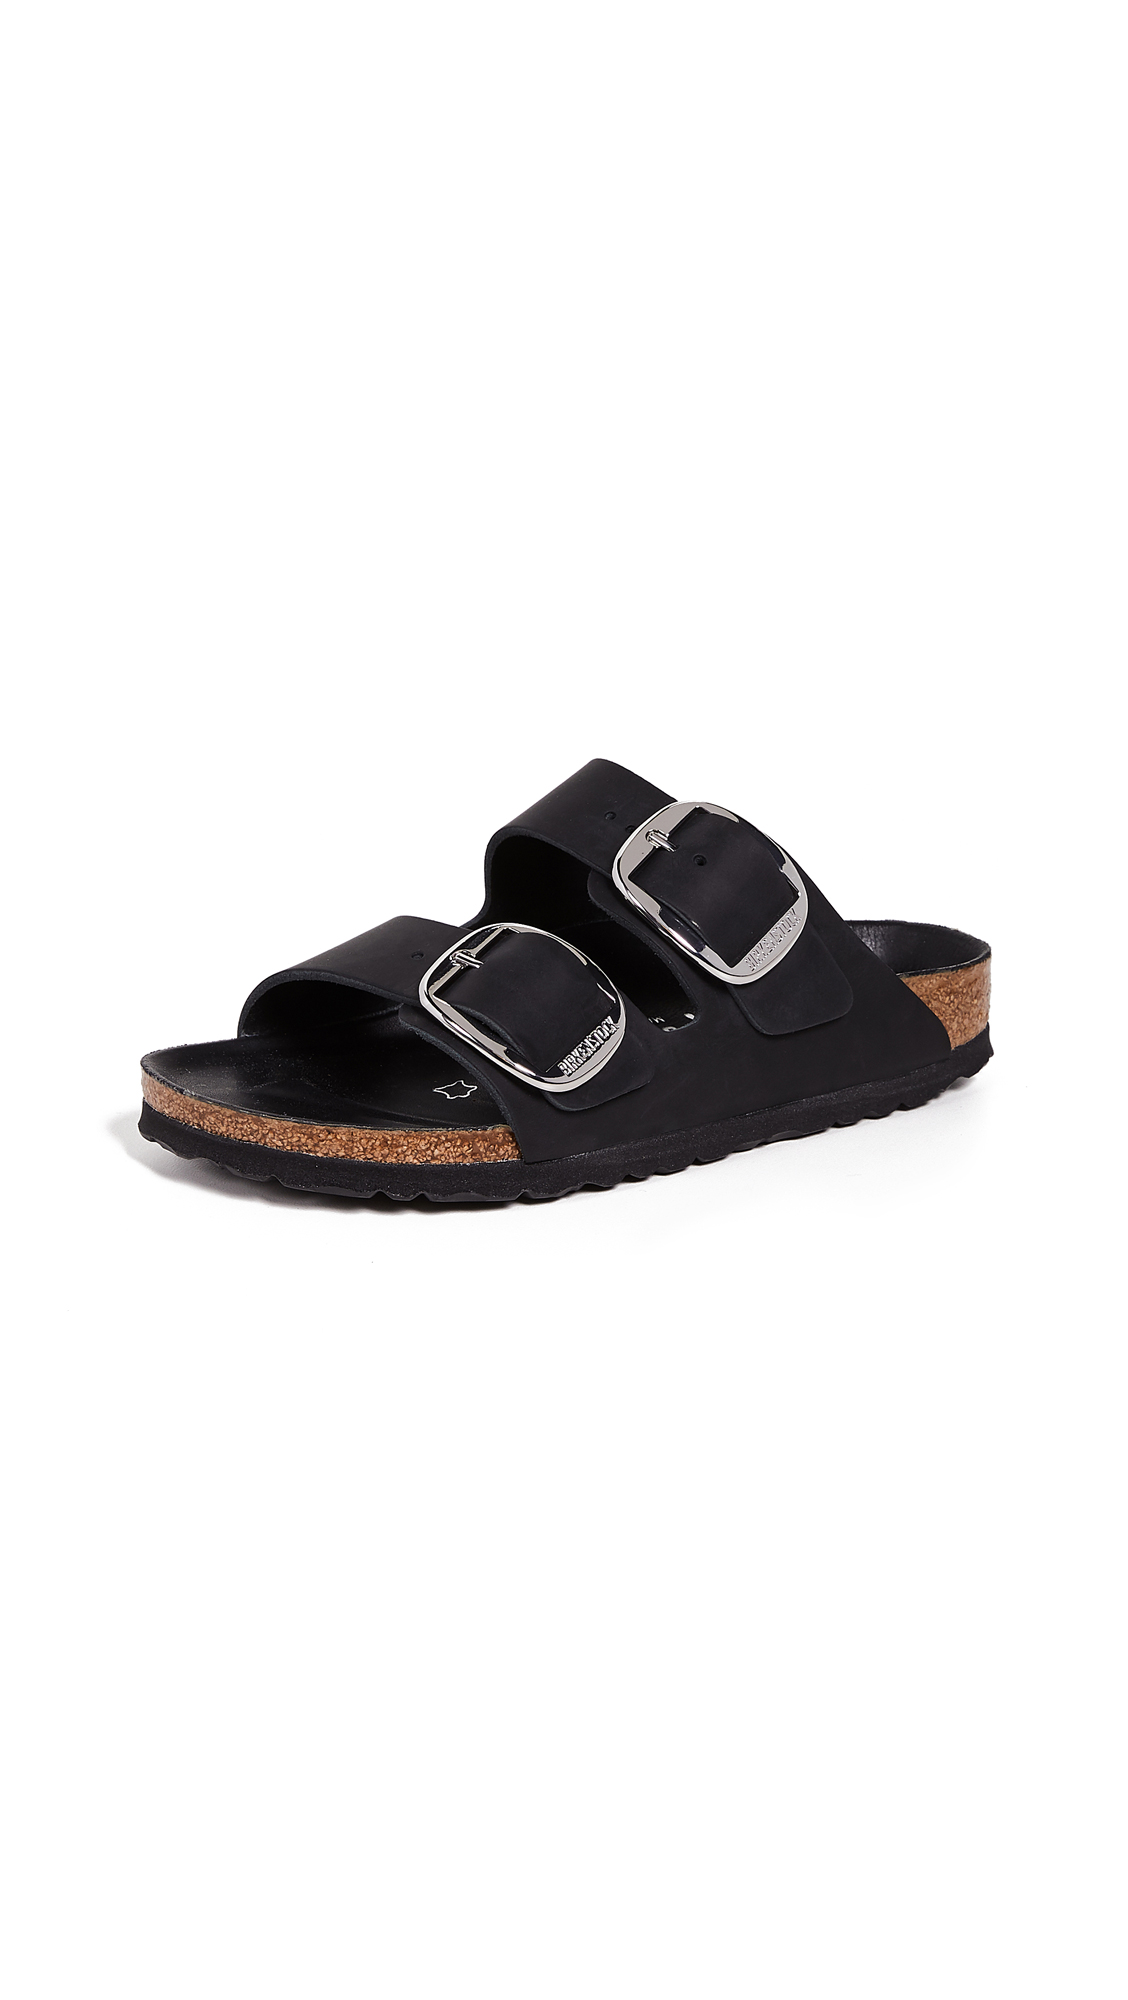 Birkenstock Arizona Big Buckle Sandals - Black